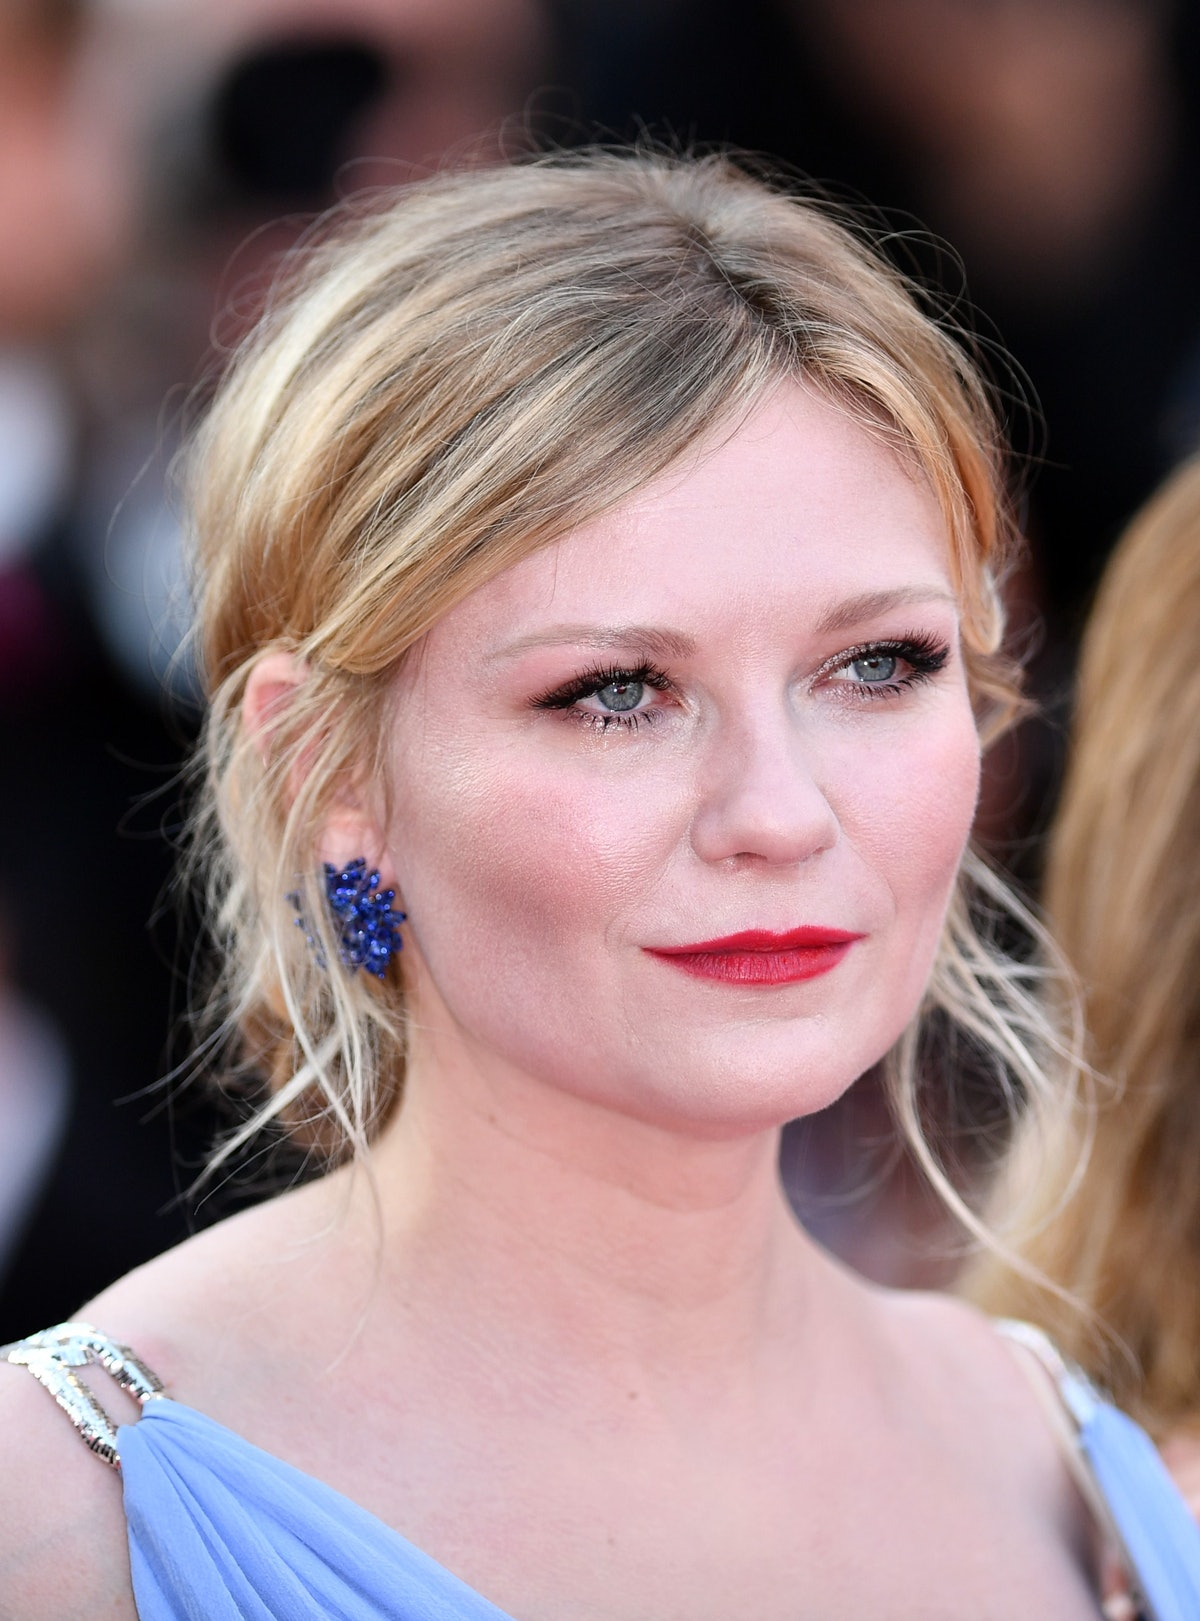 70th Cannes Film Festival - The Beguiled premiere